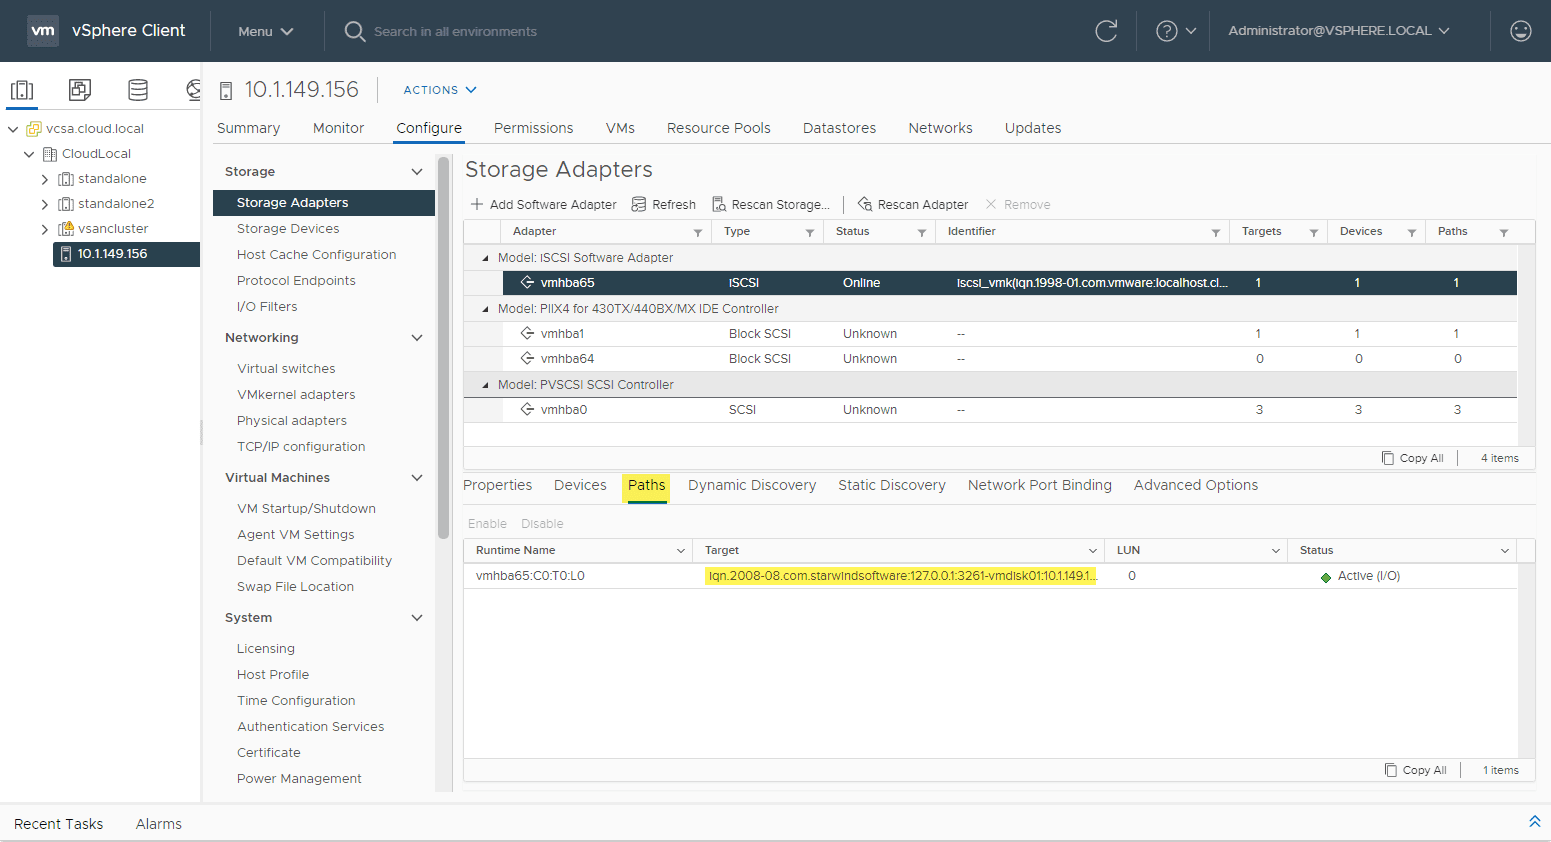 Remote iscsi lun on the iscsi target